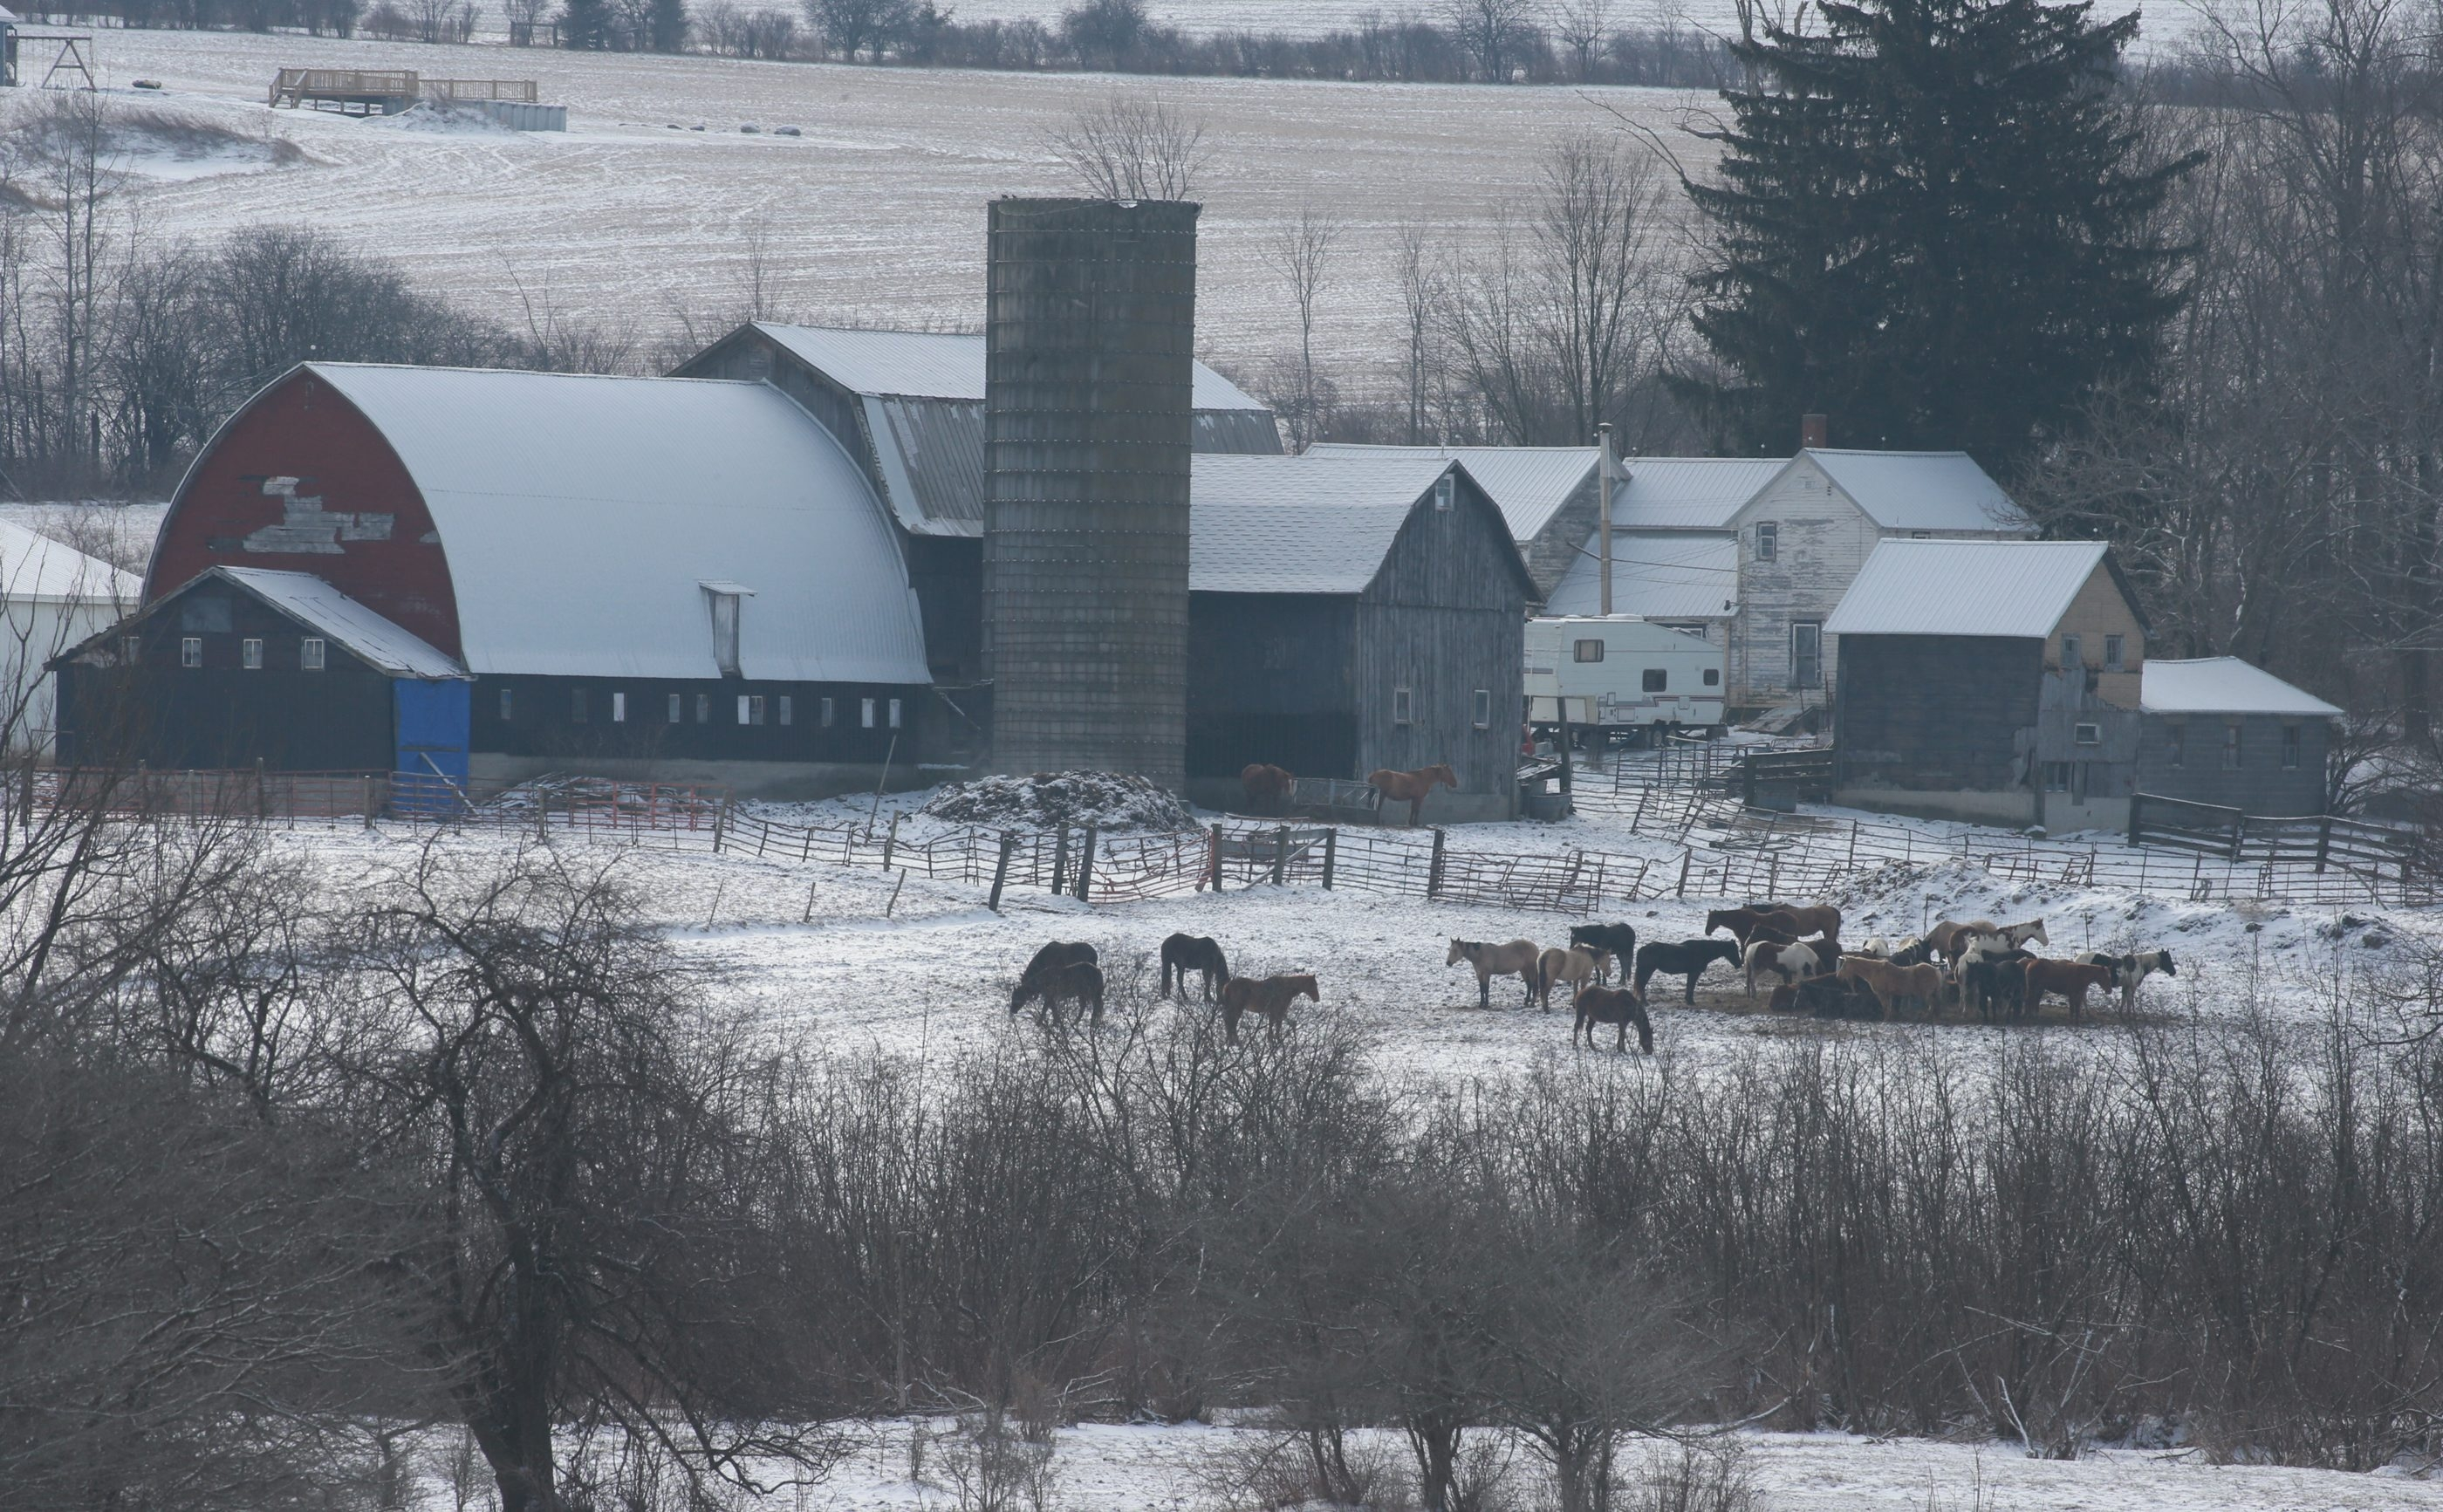 Frozen, dying horse leads to seizure of 600 animals at